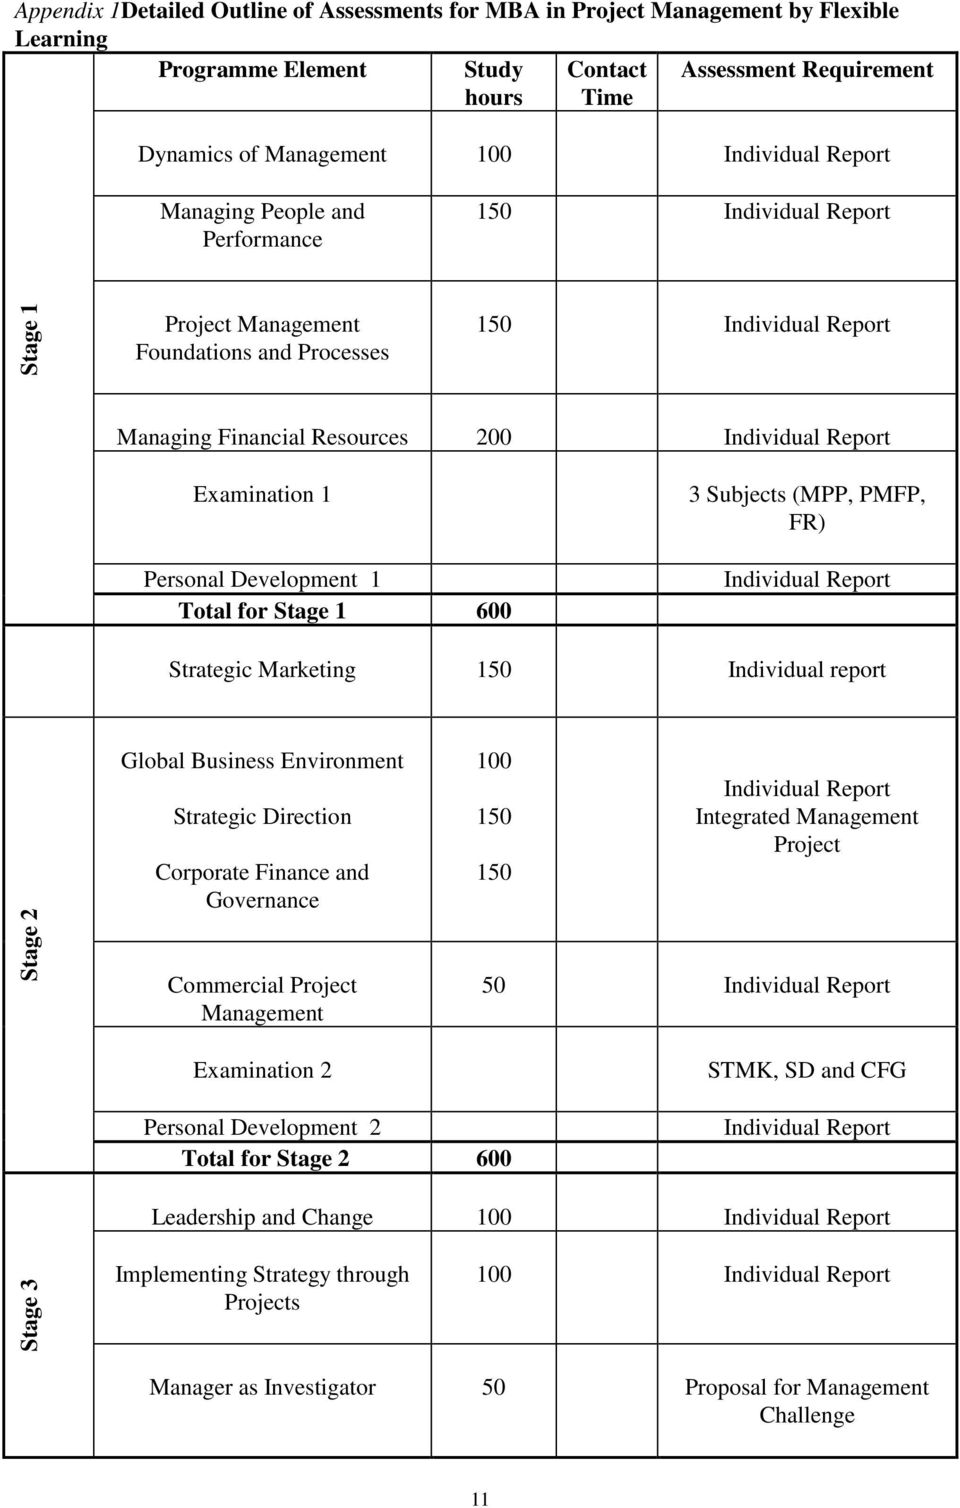 1 Personal Development 1 Total for Stage 1 600 3 Subjects (MPP, PMFP, FR) Individual Report Strategic Marketing 150 Individual report Stage 2 Global Business Environment Strategic Direction Corporate